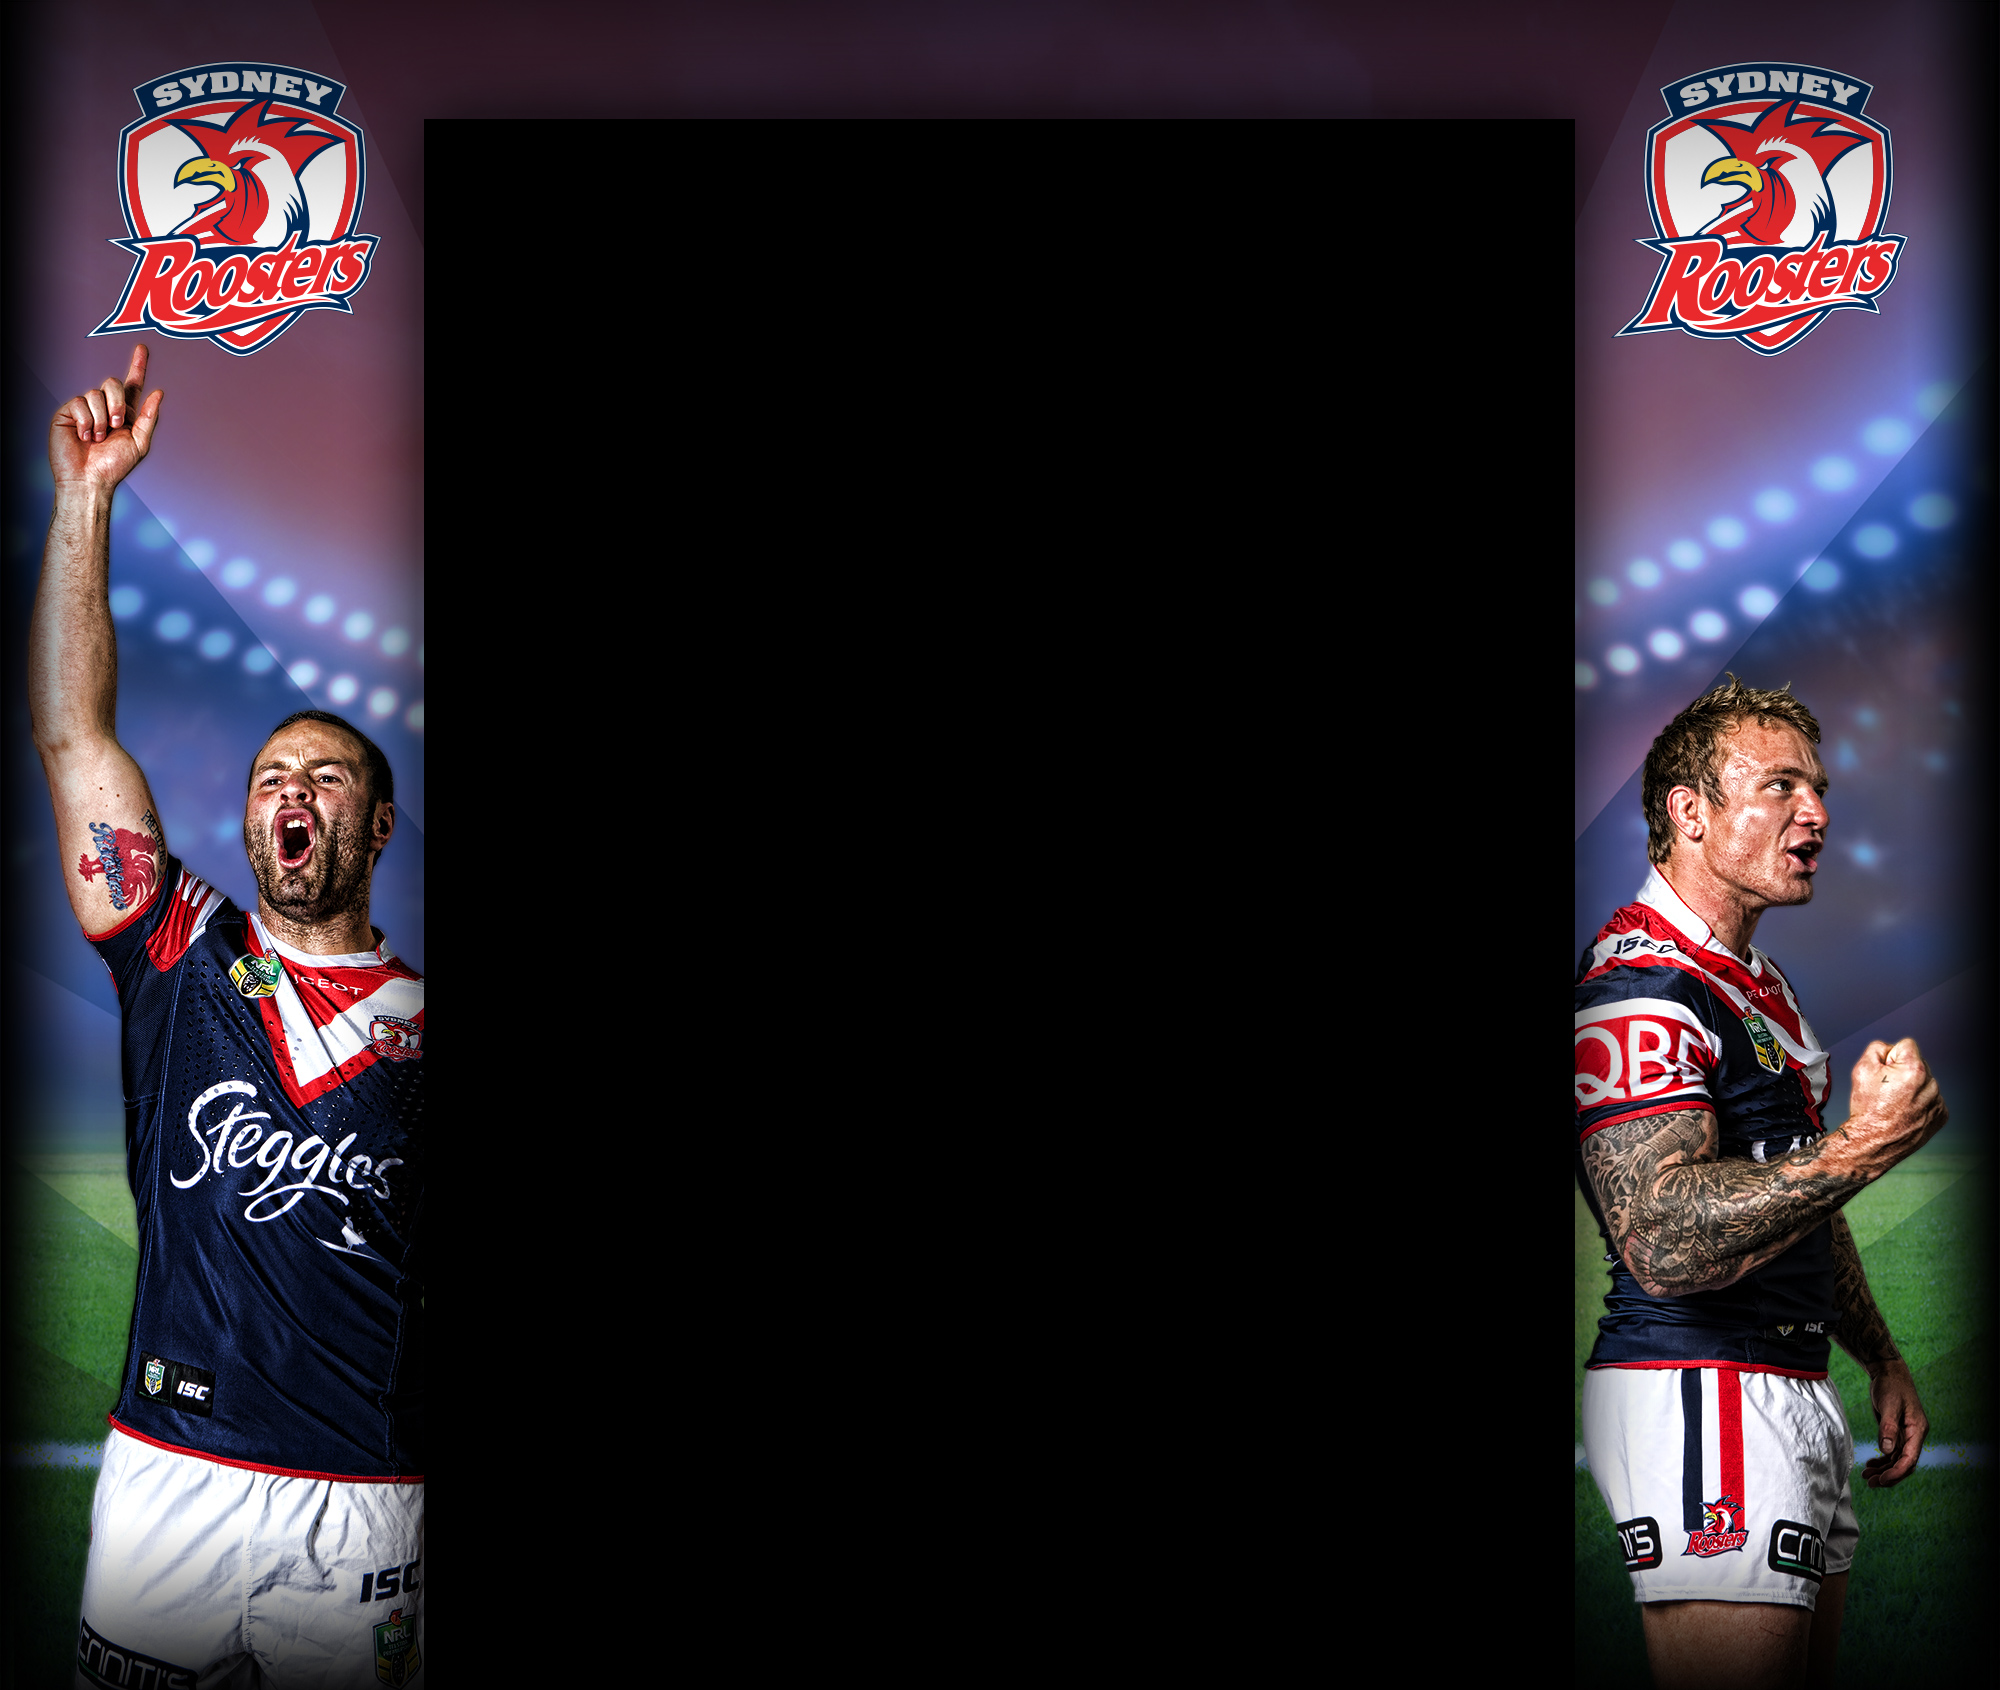 roosters-2016-background2.jpg